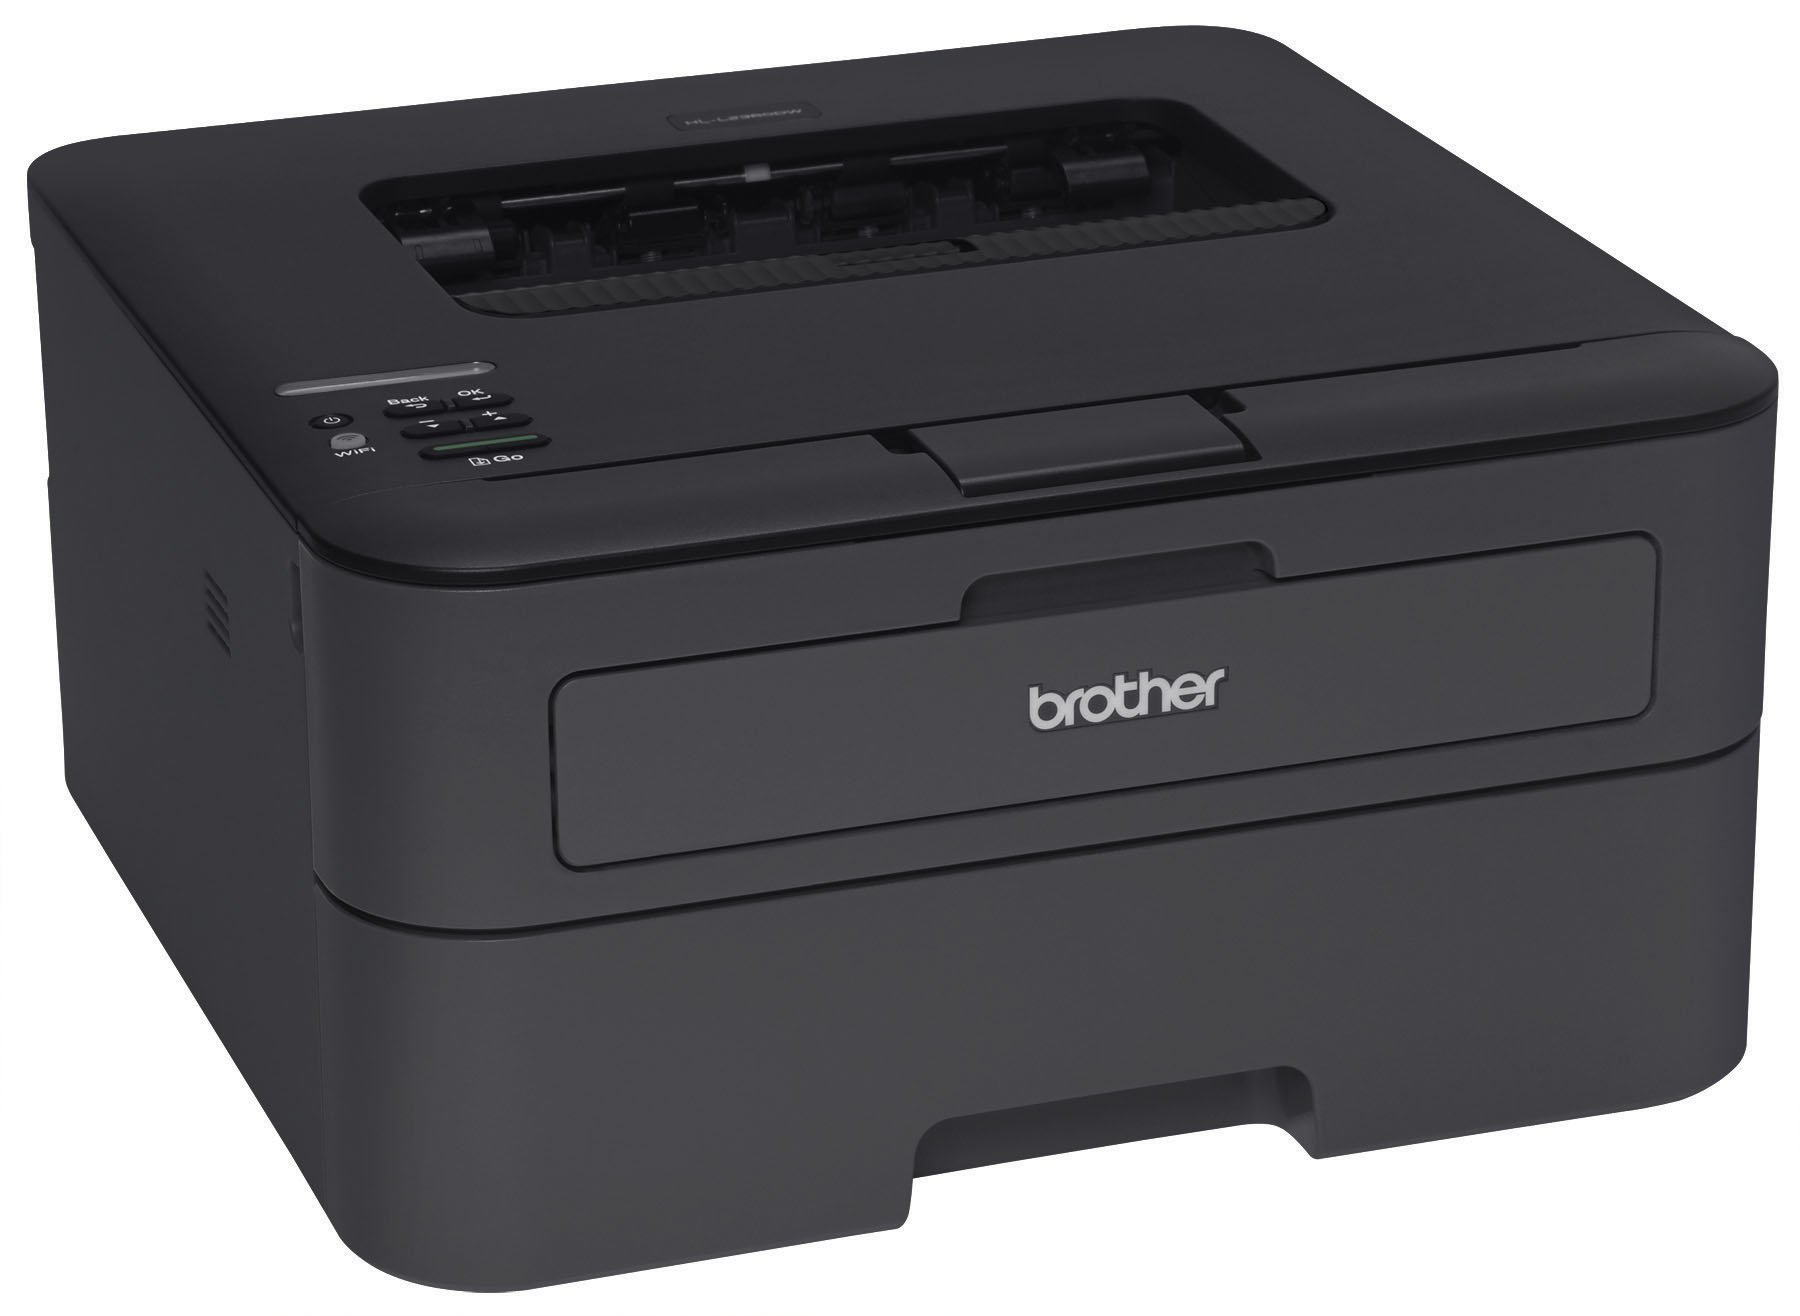 Brother Printer EHLL2340DW Wireless Monochrome Printer (Certified Refurbished) by Brother (Image #3)